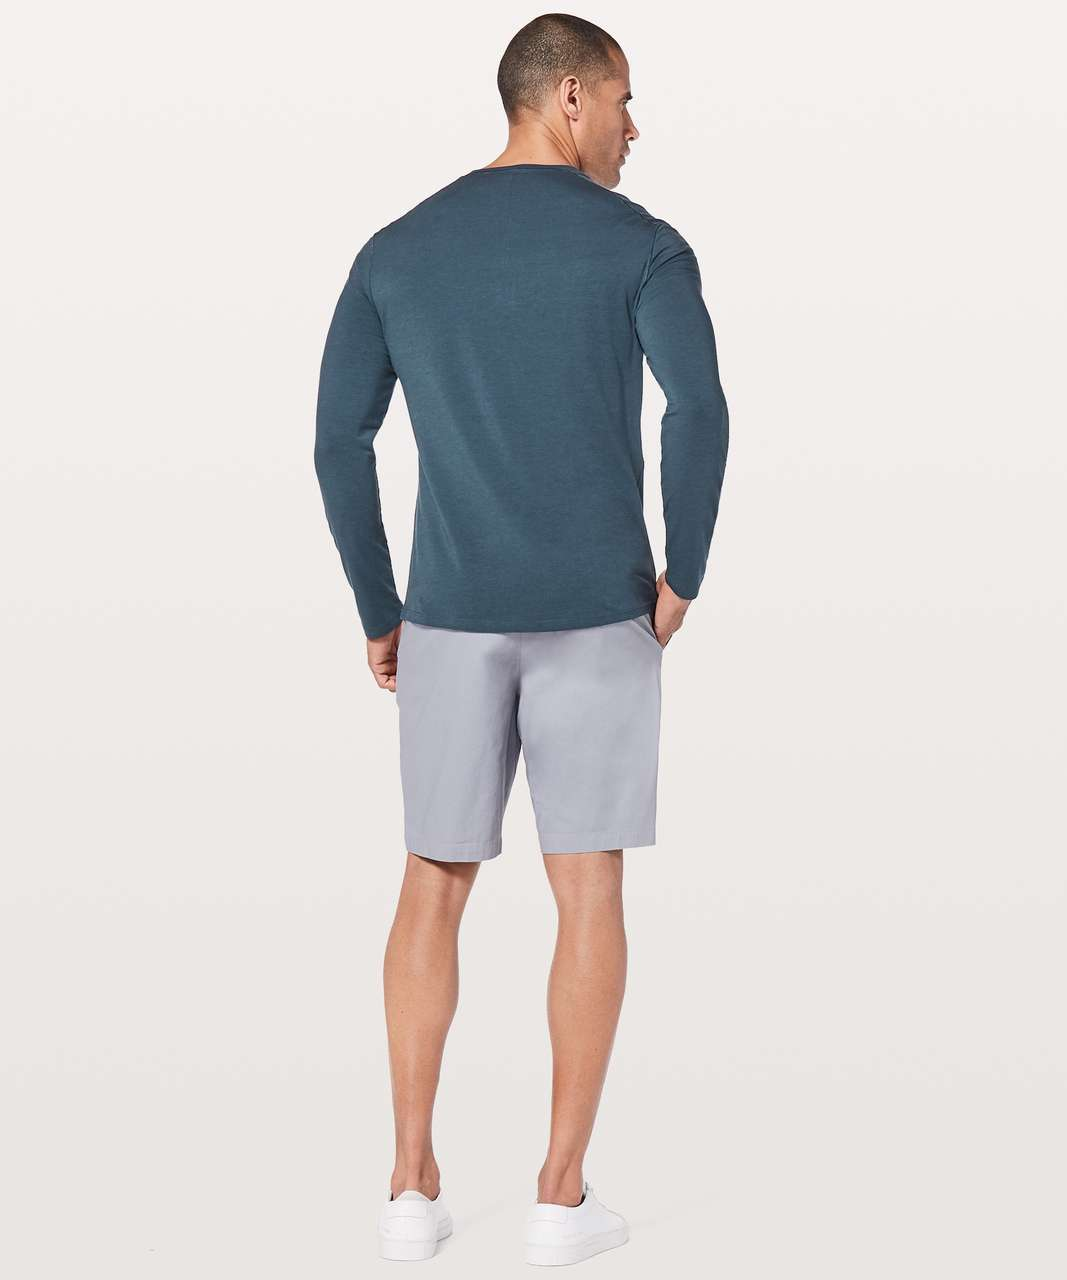 Lululemon 5 Year Basic Long Sleeve Henley - Mach Blue